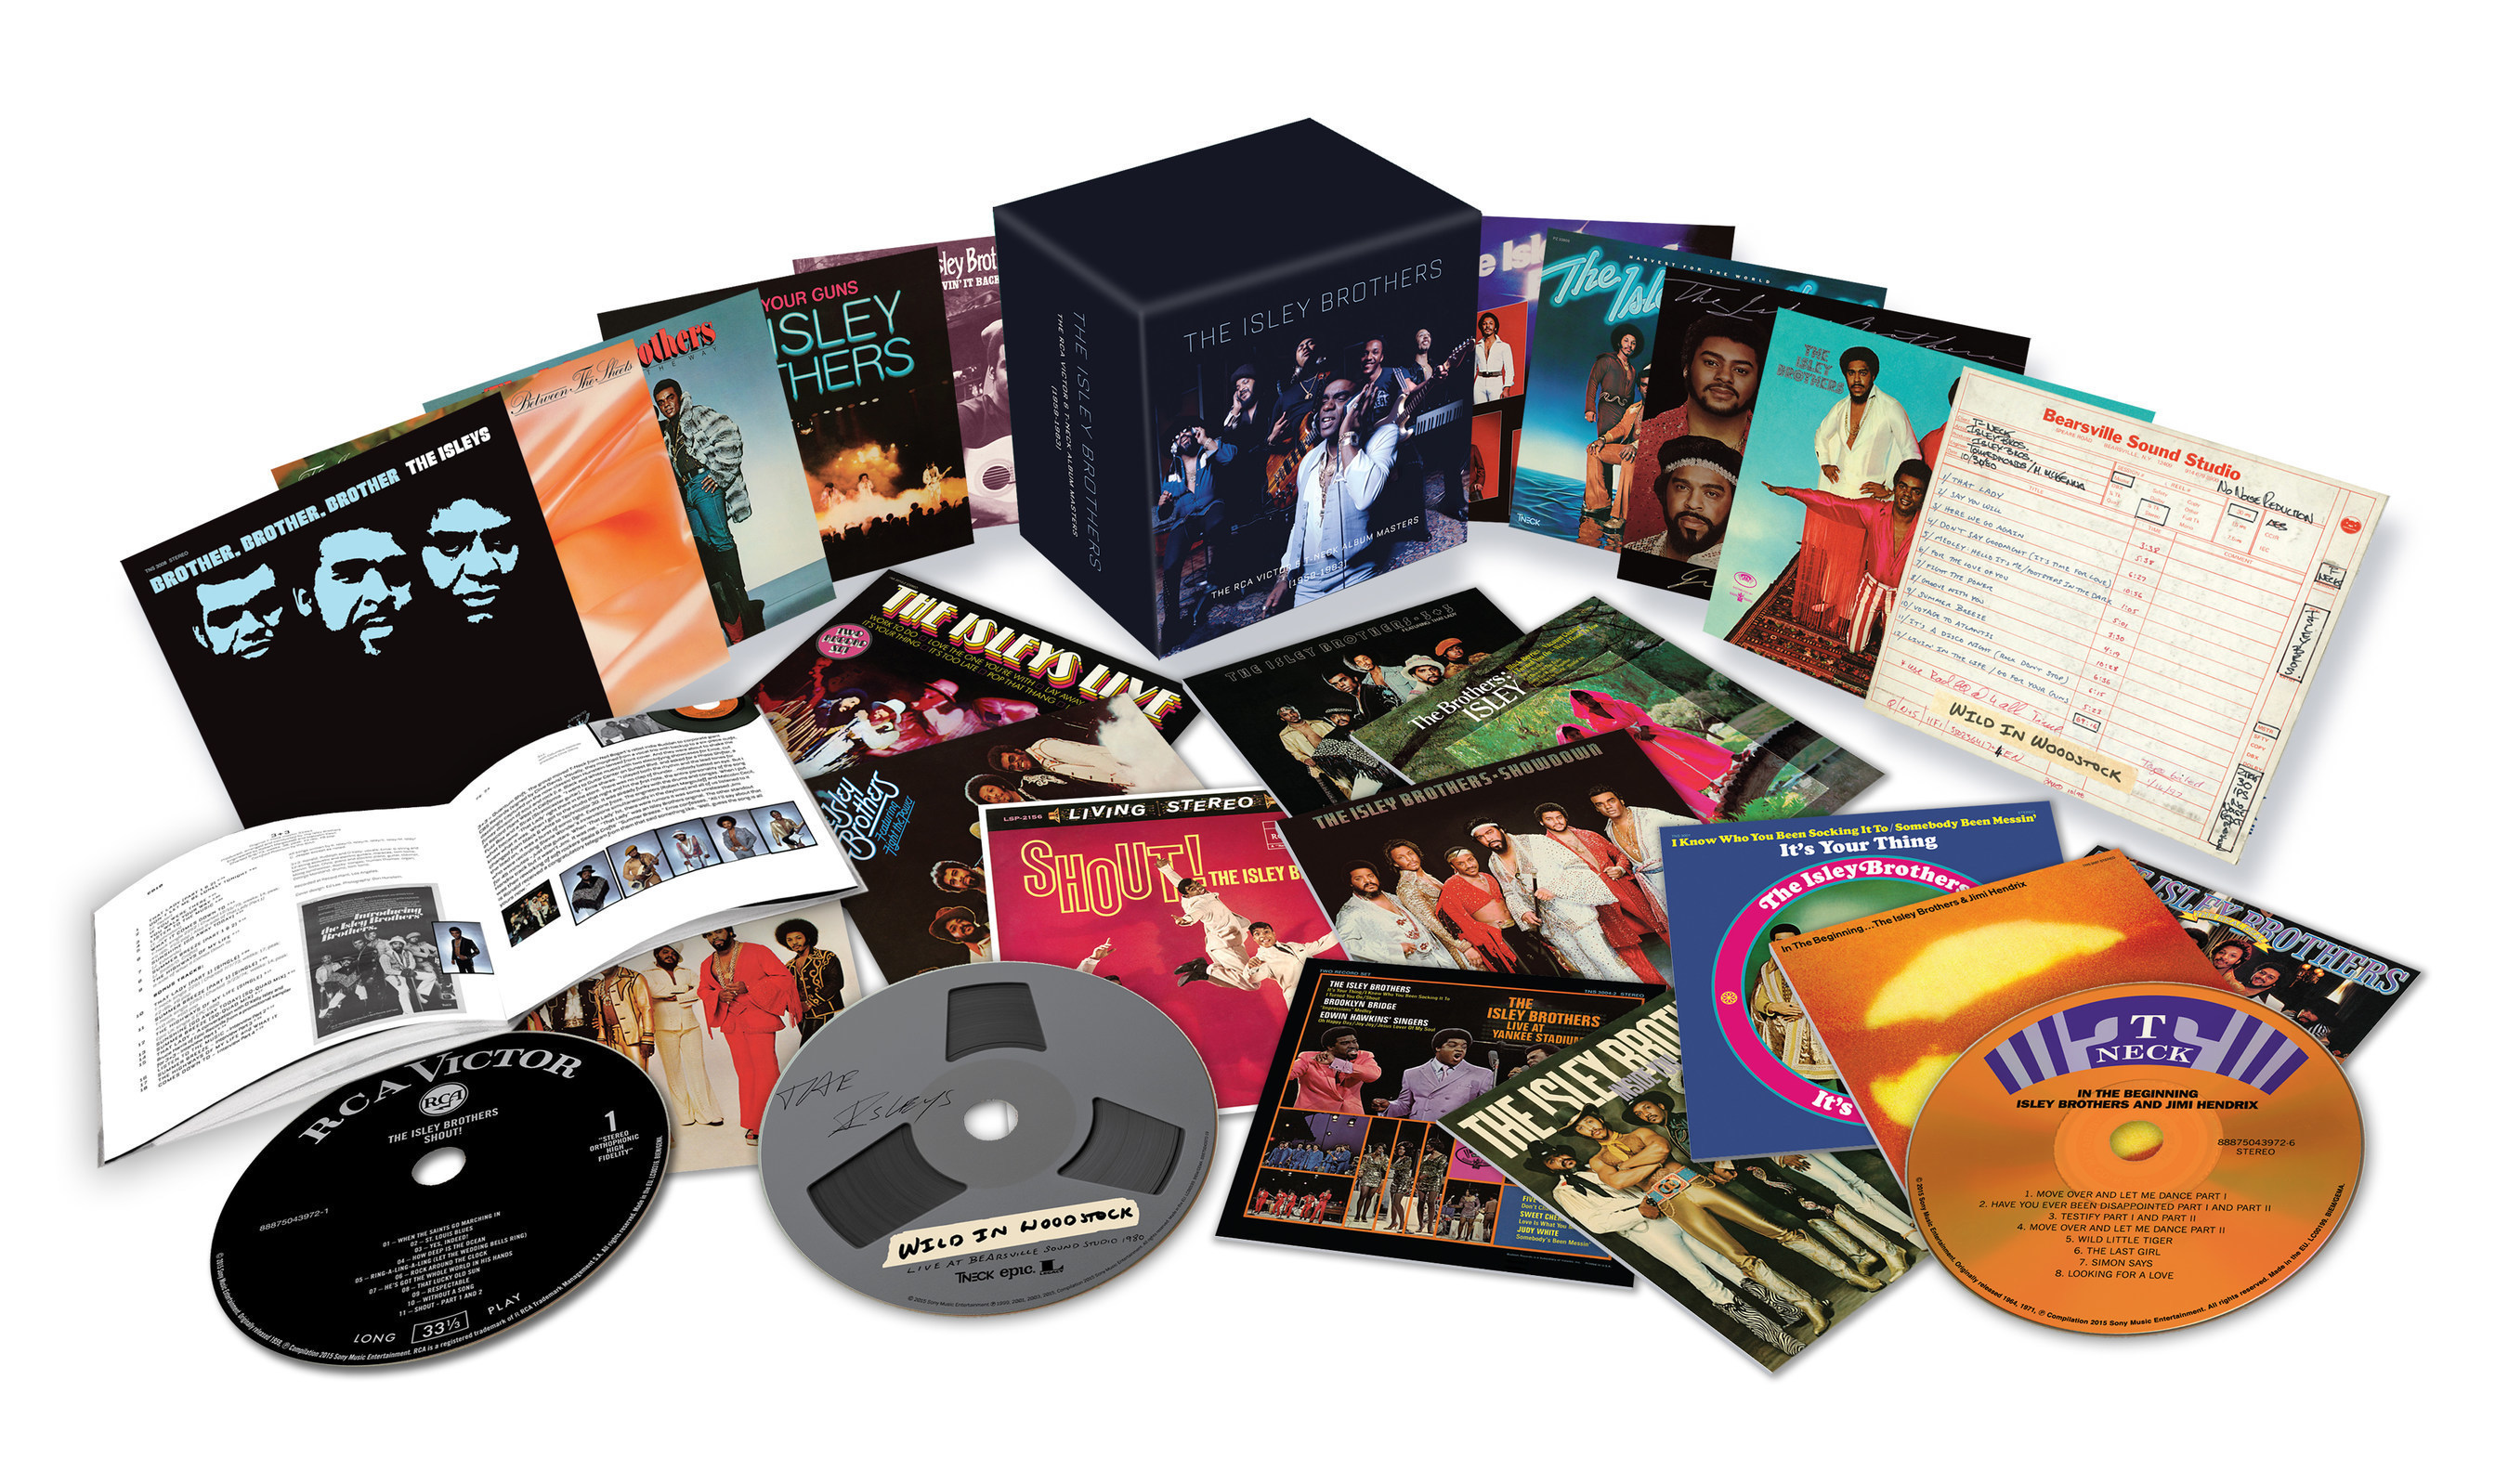 The Isley Brothers: The RCA Victor and T-Neck Album Masters (1959-1983), a monumental 23-disc box set, to be released on Friday, August 21, 2015